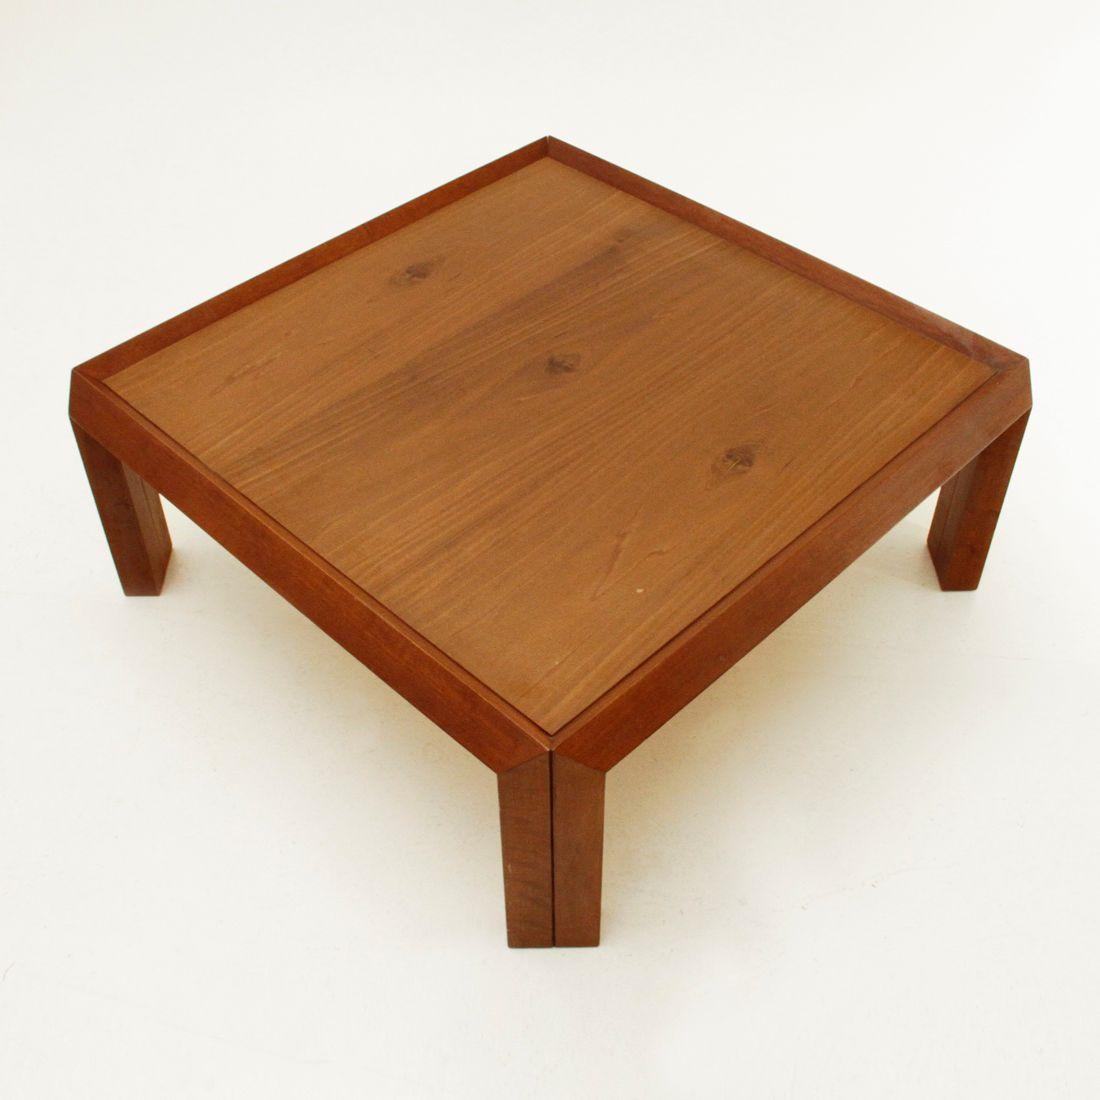 Italian square wooden coffee table 1980s for sale at pamono for Coffee tables square wood